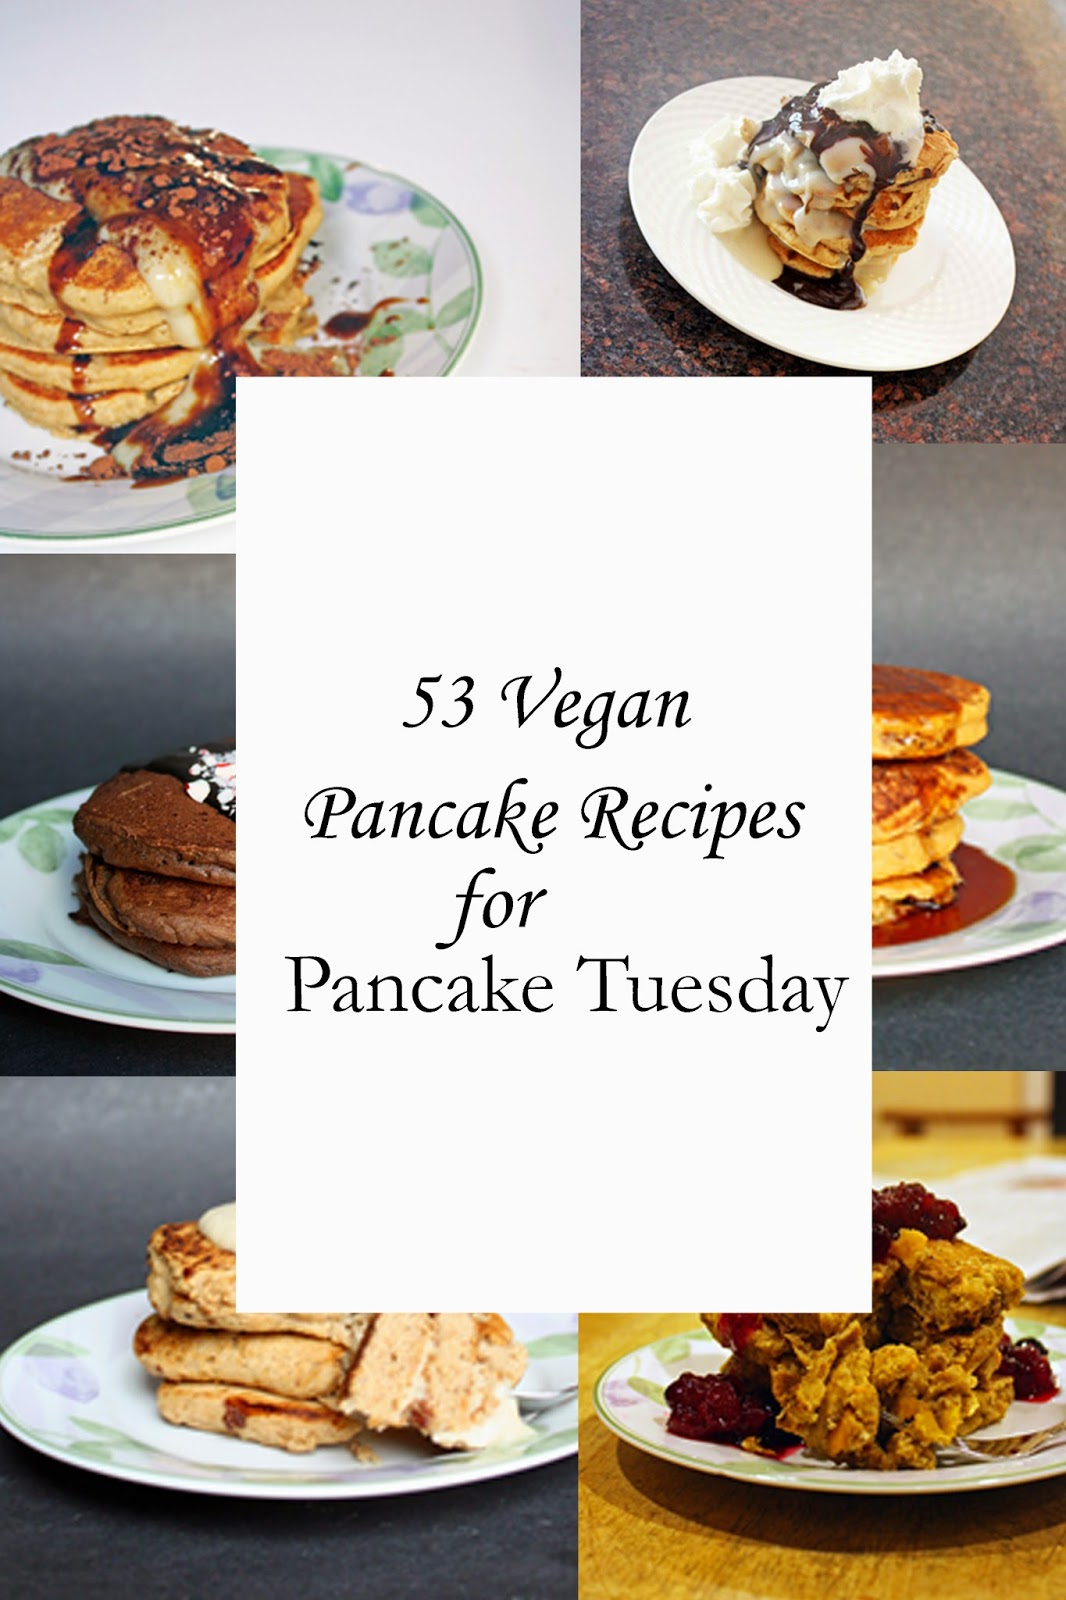 53 vegan pancake recipes for pancake tuesday